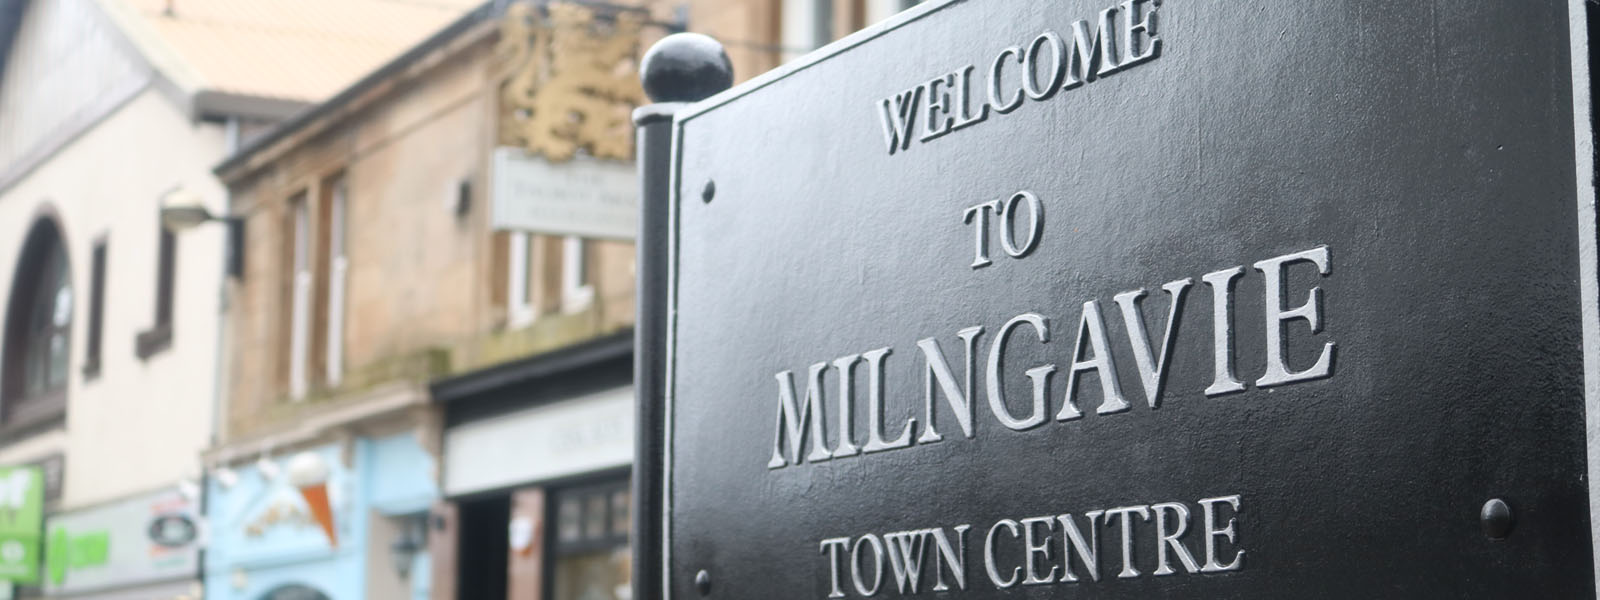 Relaunch of Milngaviebid.com